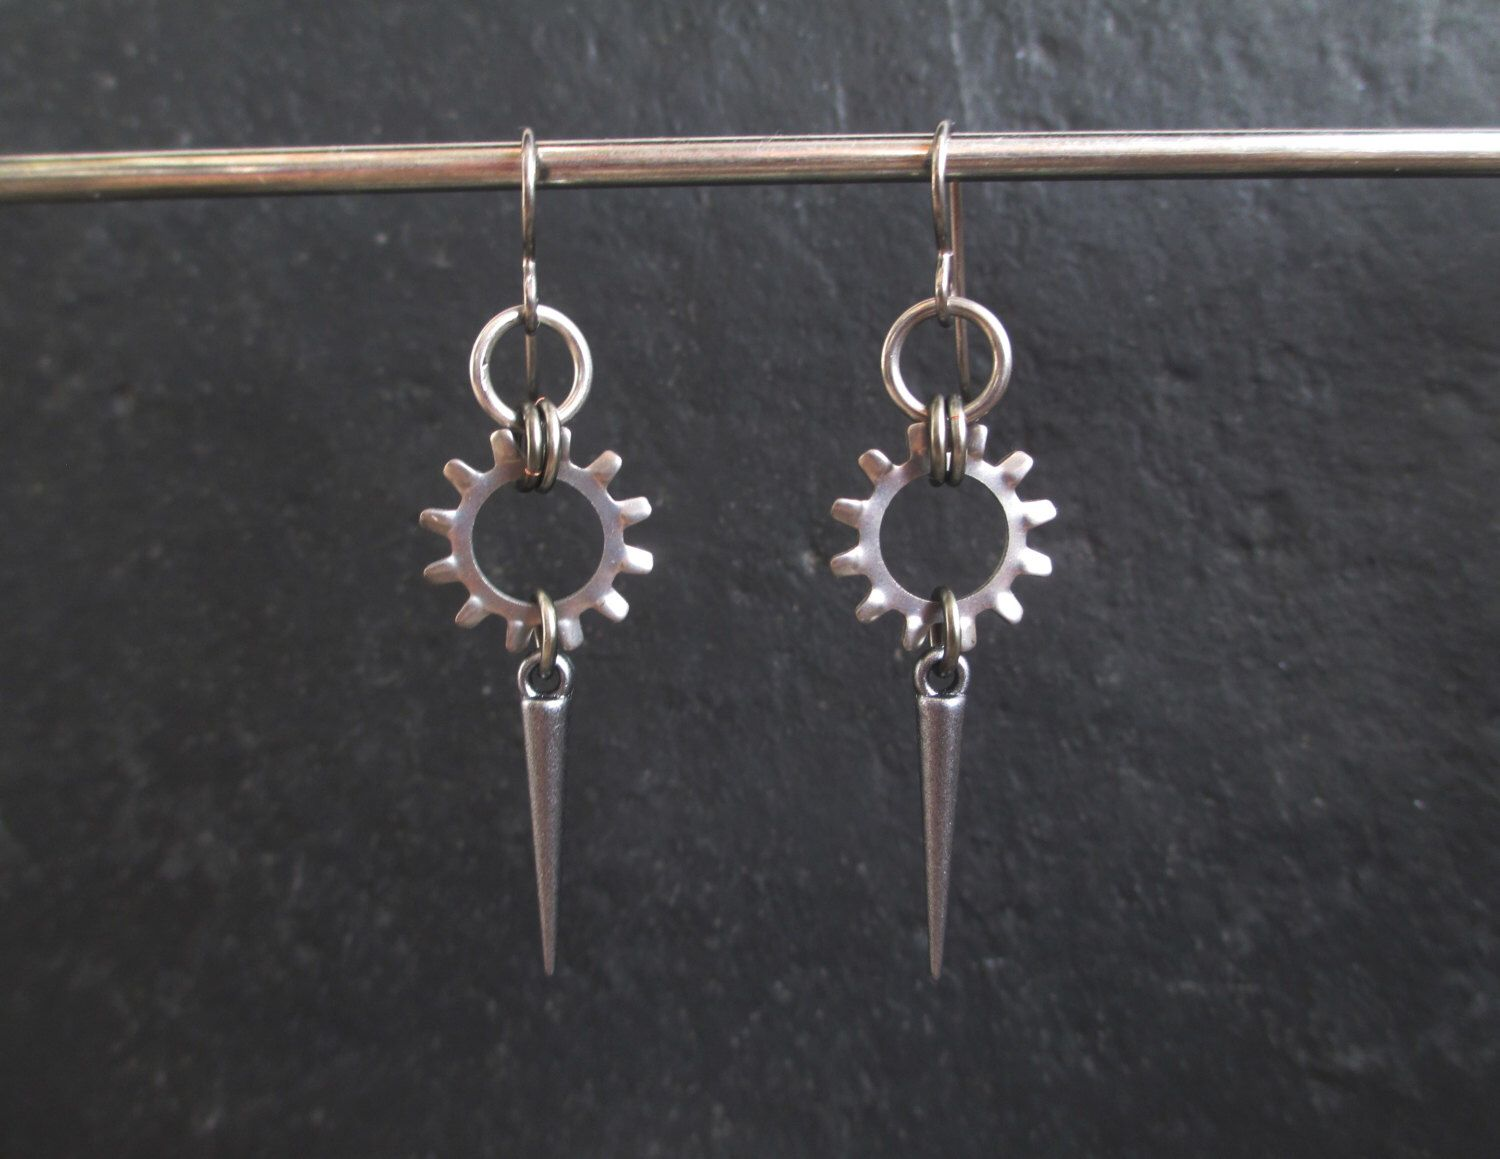 Spike Earrings, Industrial Earrings, Stainless Steel Earrings, Hypoallergenic Earrings, Washer Earrings, Hardware Jewelry, Black Cat Links by BlackCatLinks on Etsy https://www.etsy.com/listing/175579388/spike-earrings-industrial-earrings